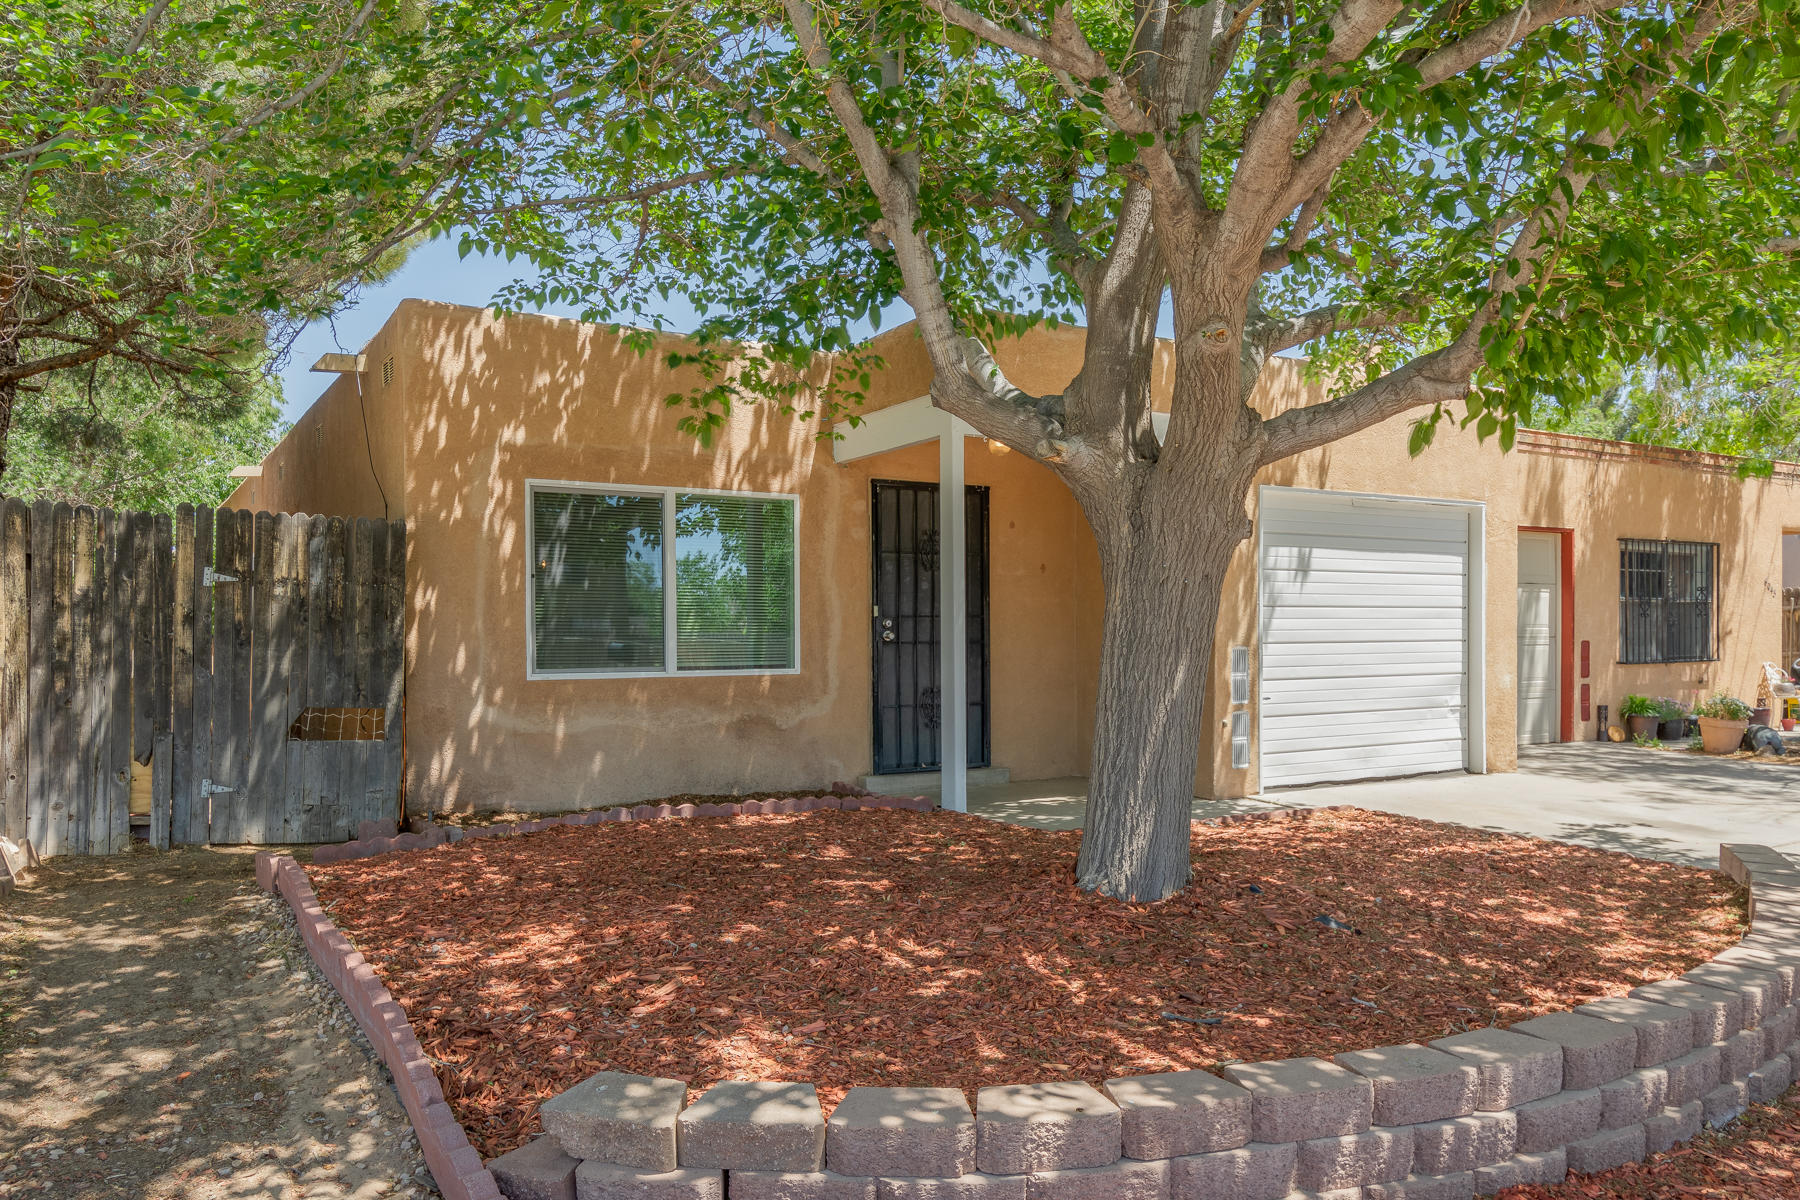 Updated and charming 3 bedroom, 2 bath home. This townhome has been remodeled, and is so cute for a first time home owner, professional, or downsizer. Some improvements include windows with low-e in 2018, TPO roof, Refrigerator in 2017, Stove in 2019, paint, fixtures, remodeled baths, high-efficiency toilets,, flooring, and much more.  The back yard is private and ready to create your very own paradise. Conveniently located in the heart of NW Albuquerque with easy access to I-40, shopping, and schools.